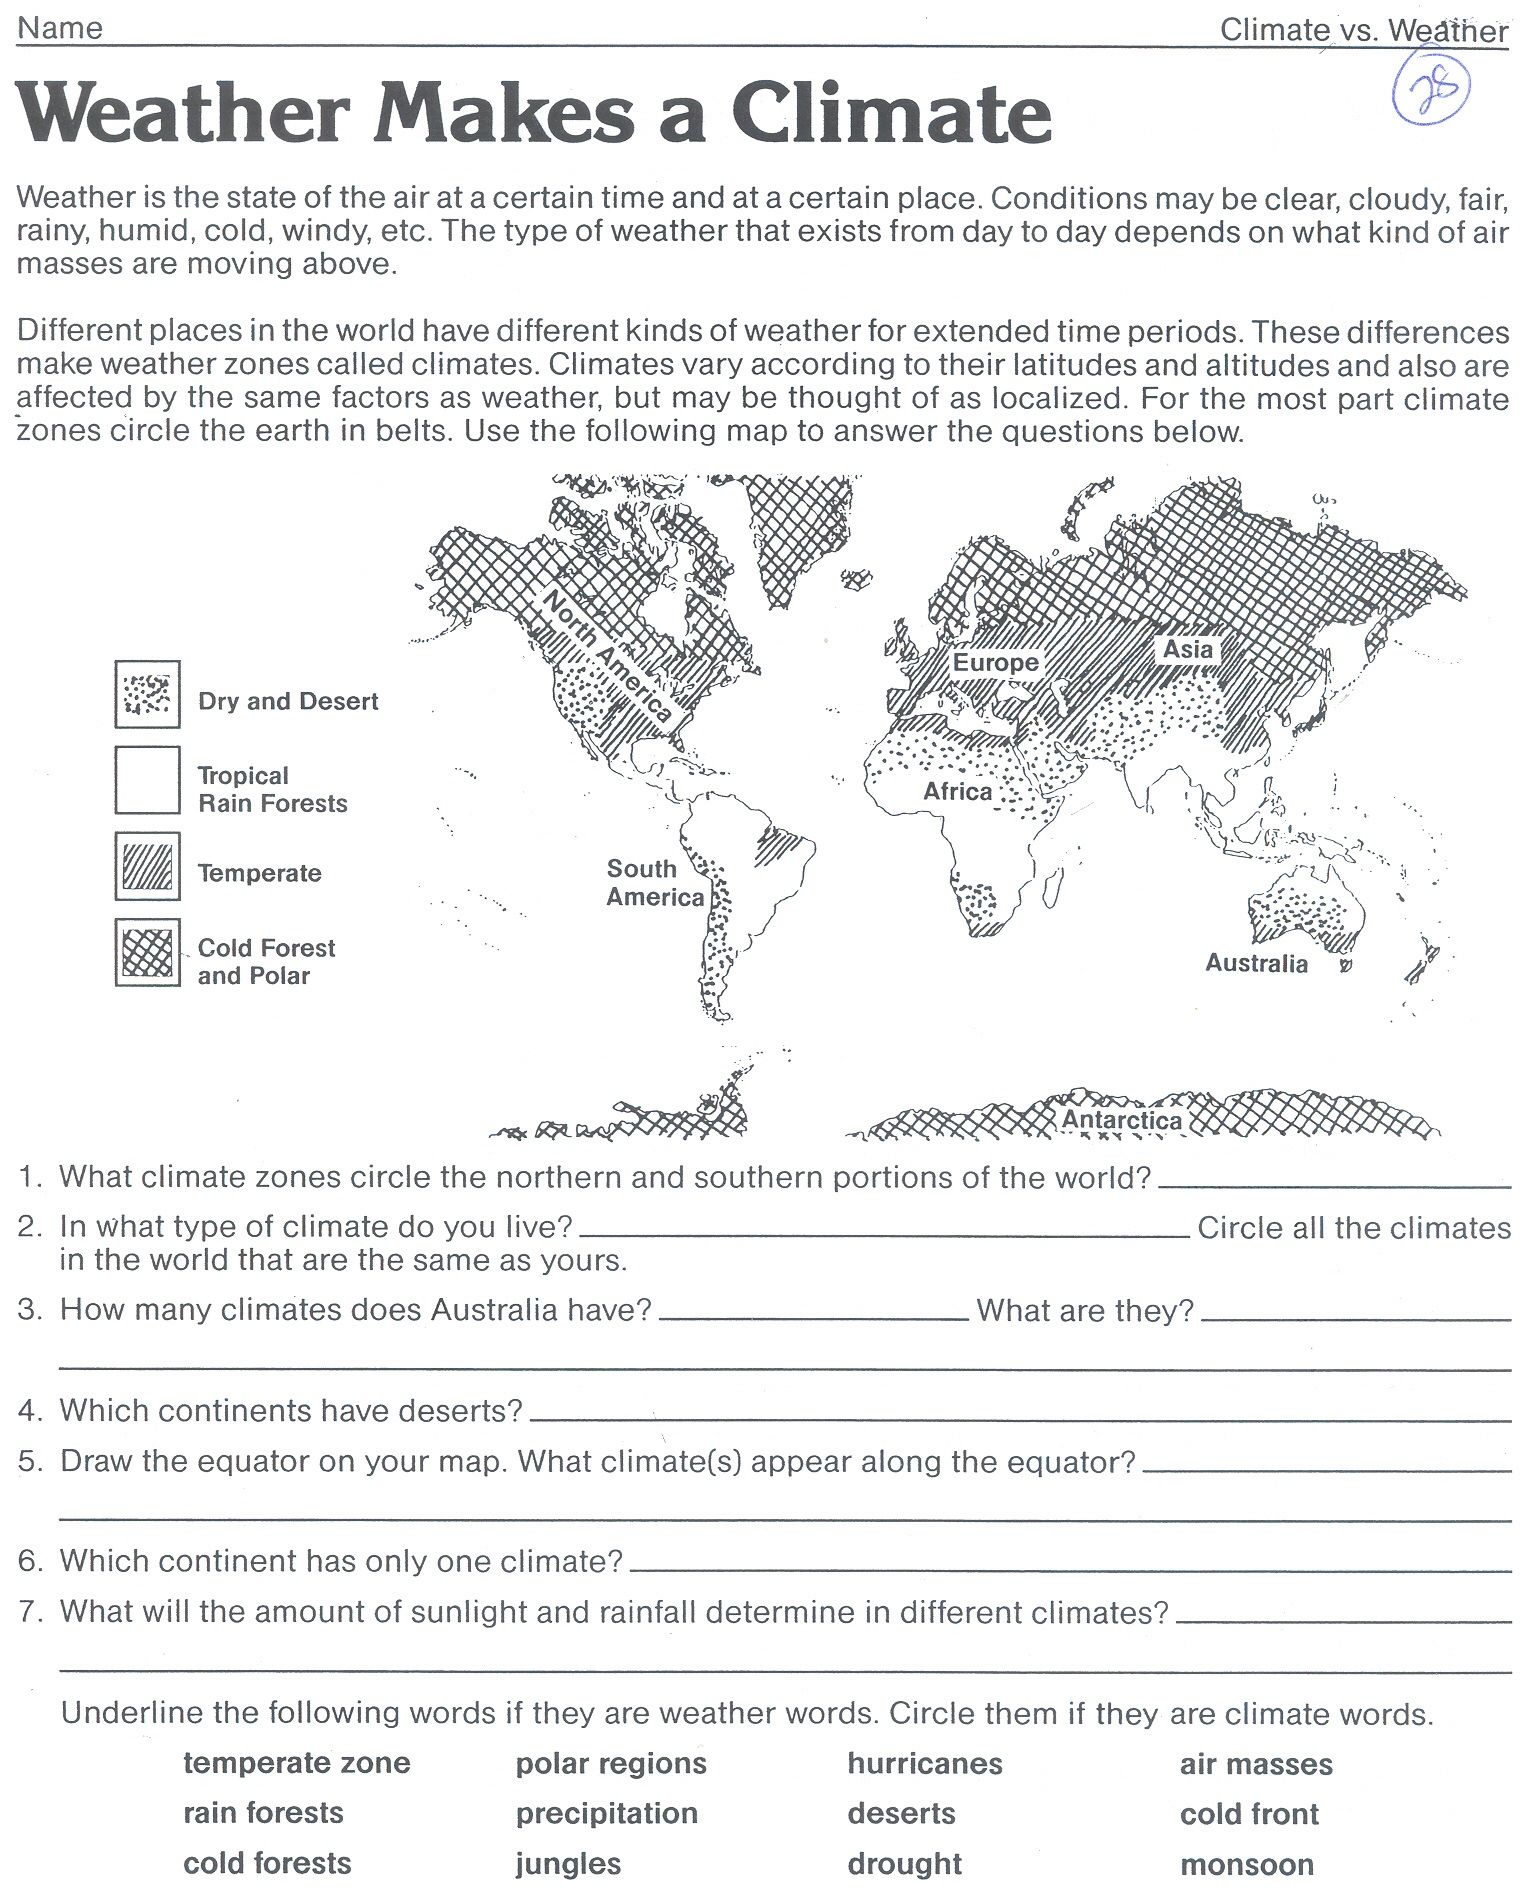 Worksheets Climate Worksheet weather makes a climate worksheet science pinterest worksheets worksheet